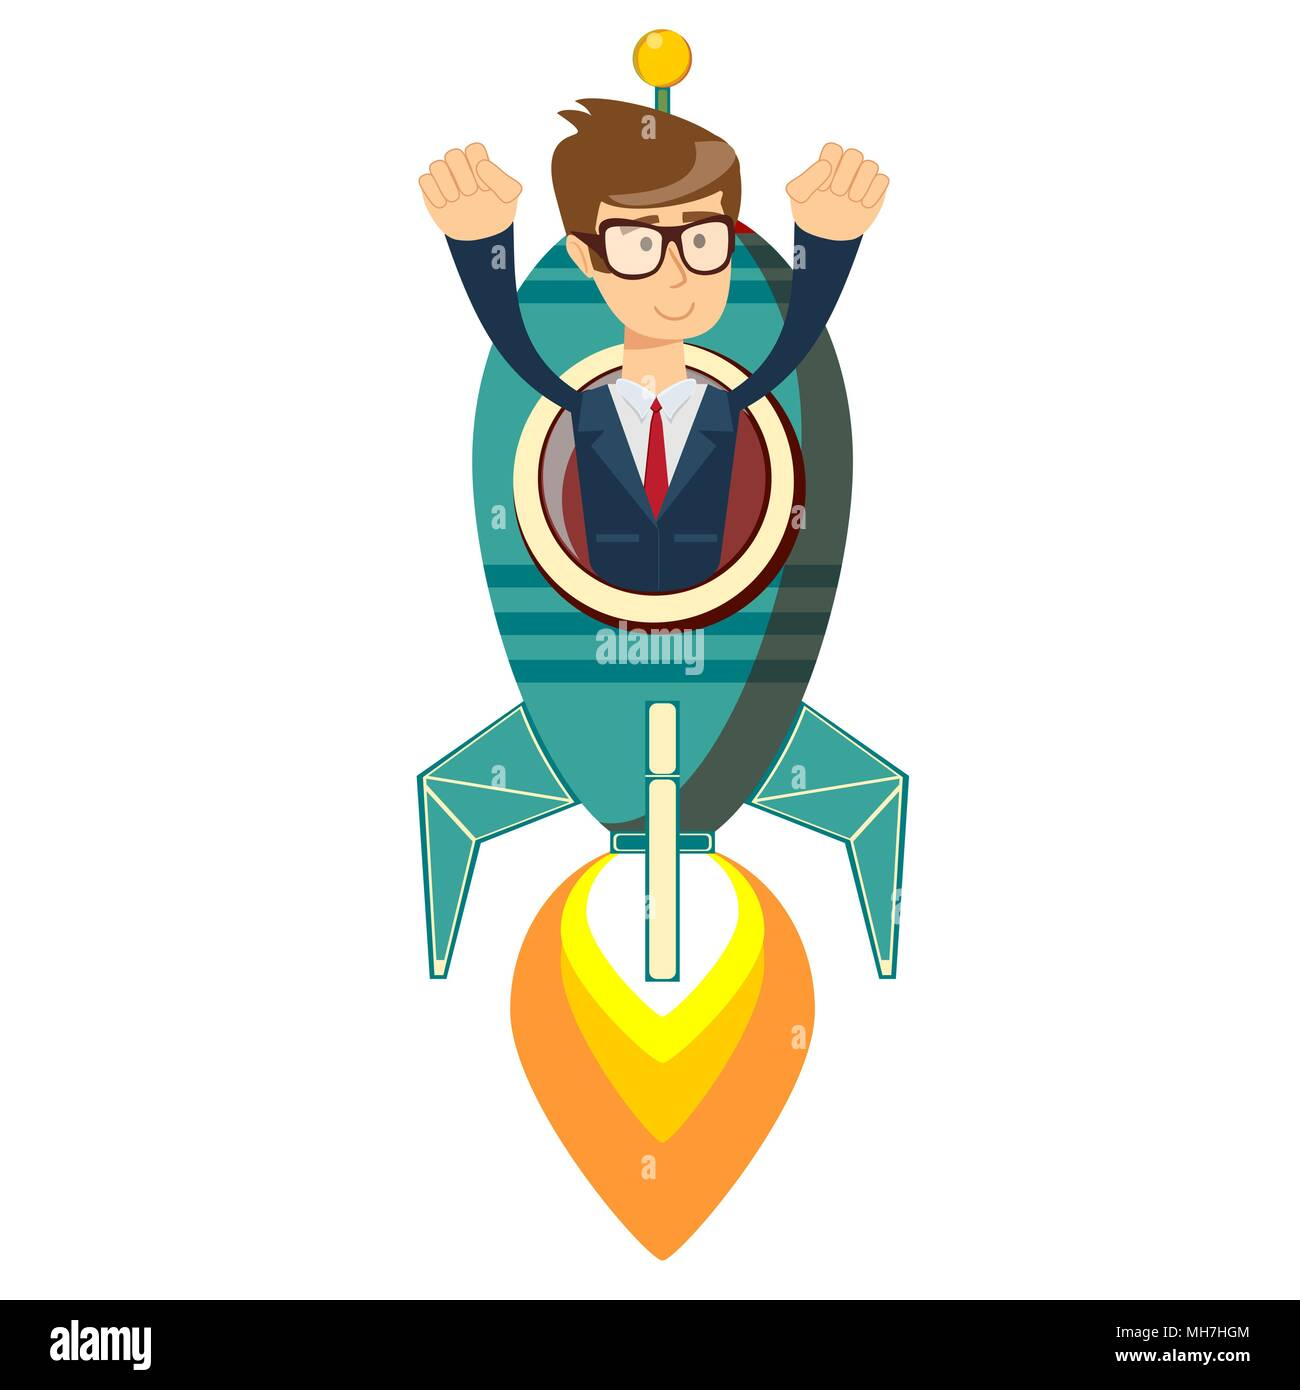 Happy businessman on a rocket ship launch - Stock Image